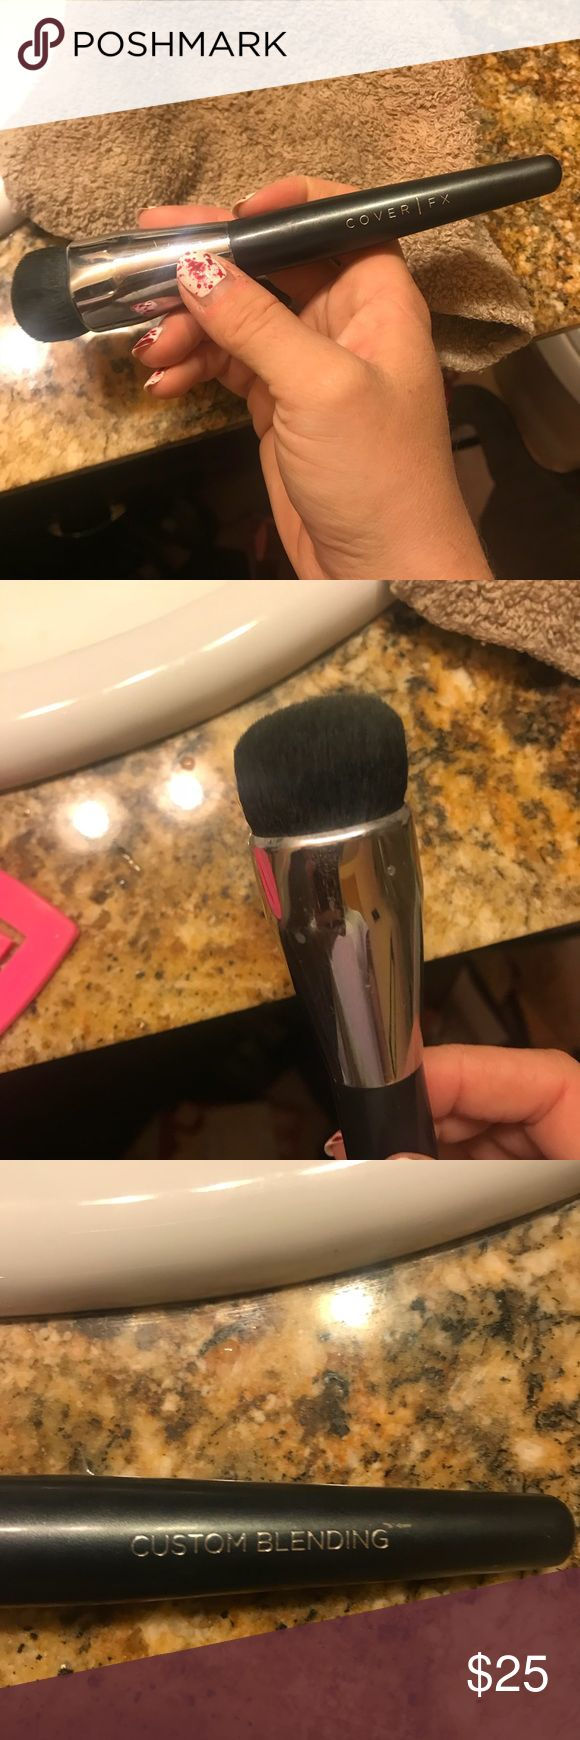 Cover Fx Custom Blending Brush Fat Thick Heavy duty brush just cleaned and sanitized, only used a few times. Very nice brush. No box as shown good condition Cover Fx Makeup Brushes & Tools